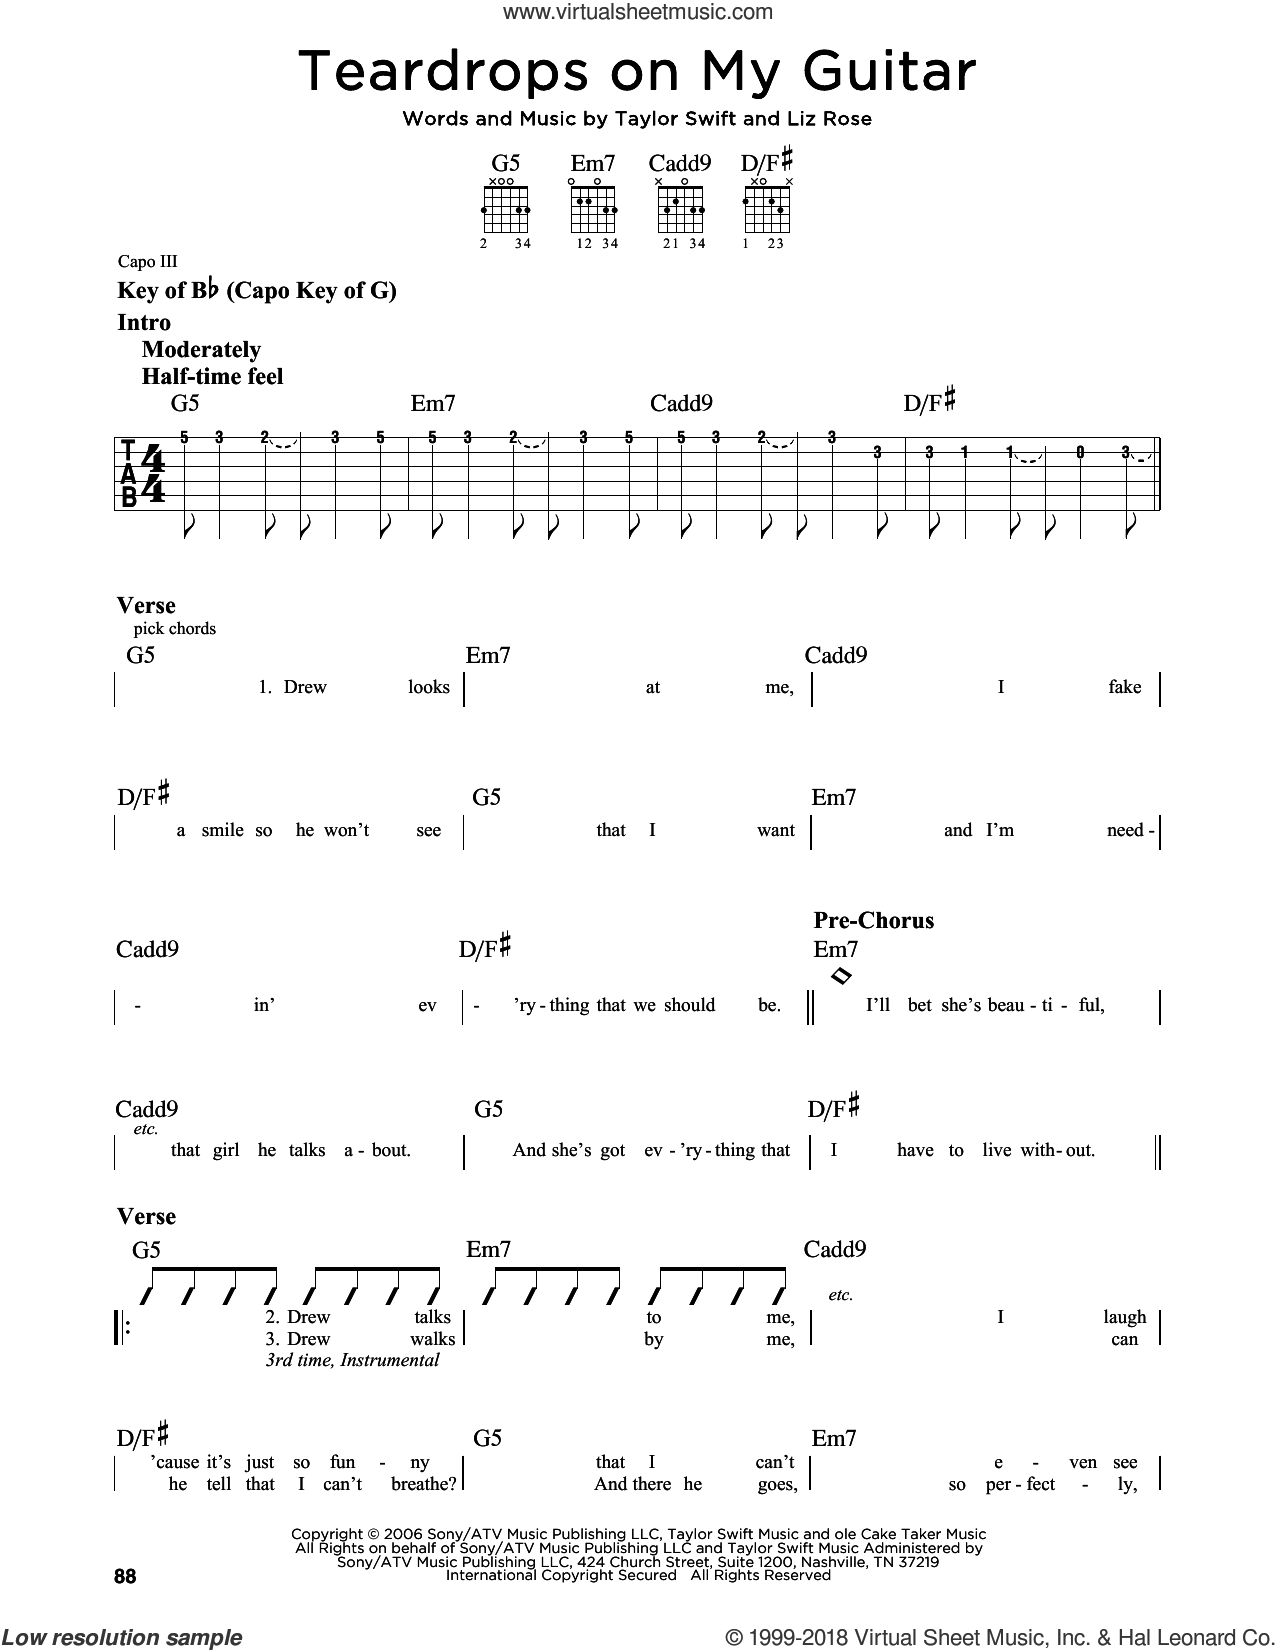 Teardrops On My Guitar sheet music for guitar solo (lead sheet) by Taylor Swift and Liz Rose, intermediate guitar (lead sheet). Score Image Preview.